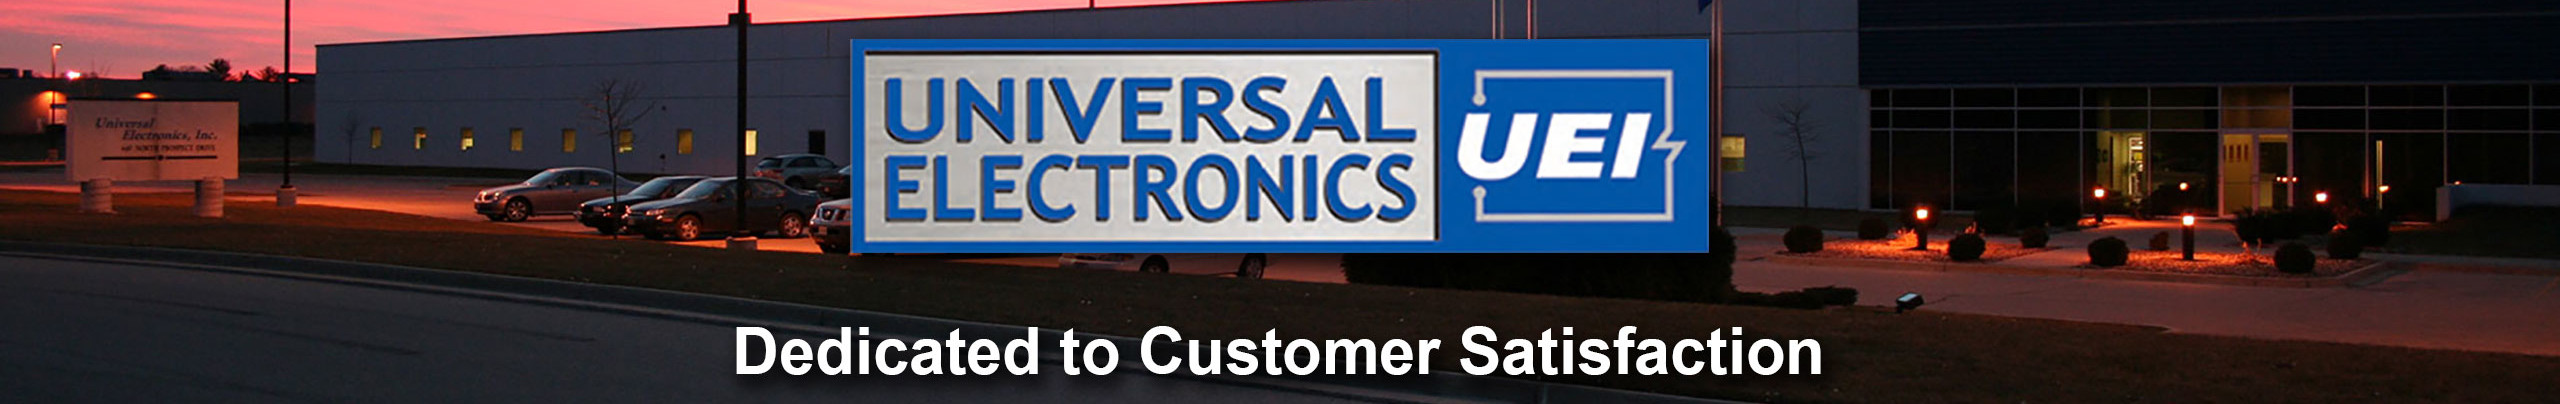 Universal Electronics, Inc. (UEI) is a full service electronics contract manufacturer with a focus on high mix, low-to-medium volume, complex PCBA's and full box builds.